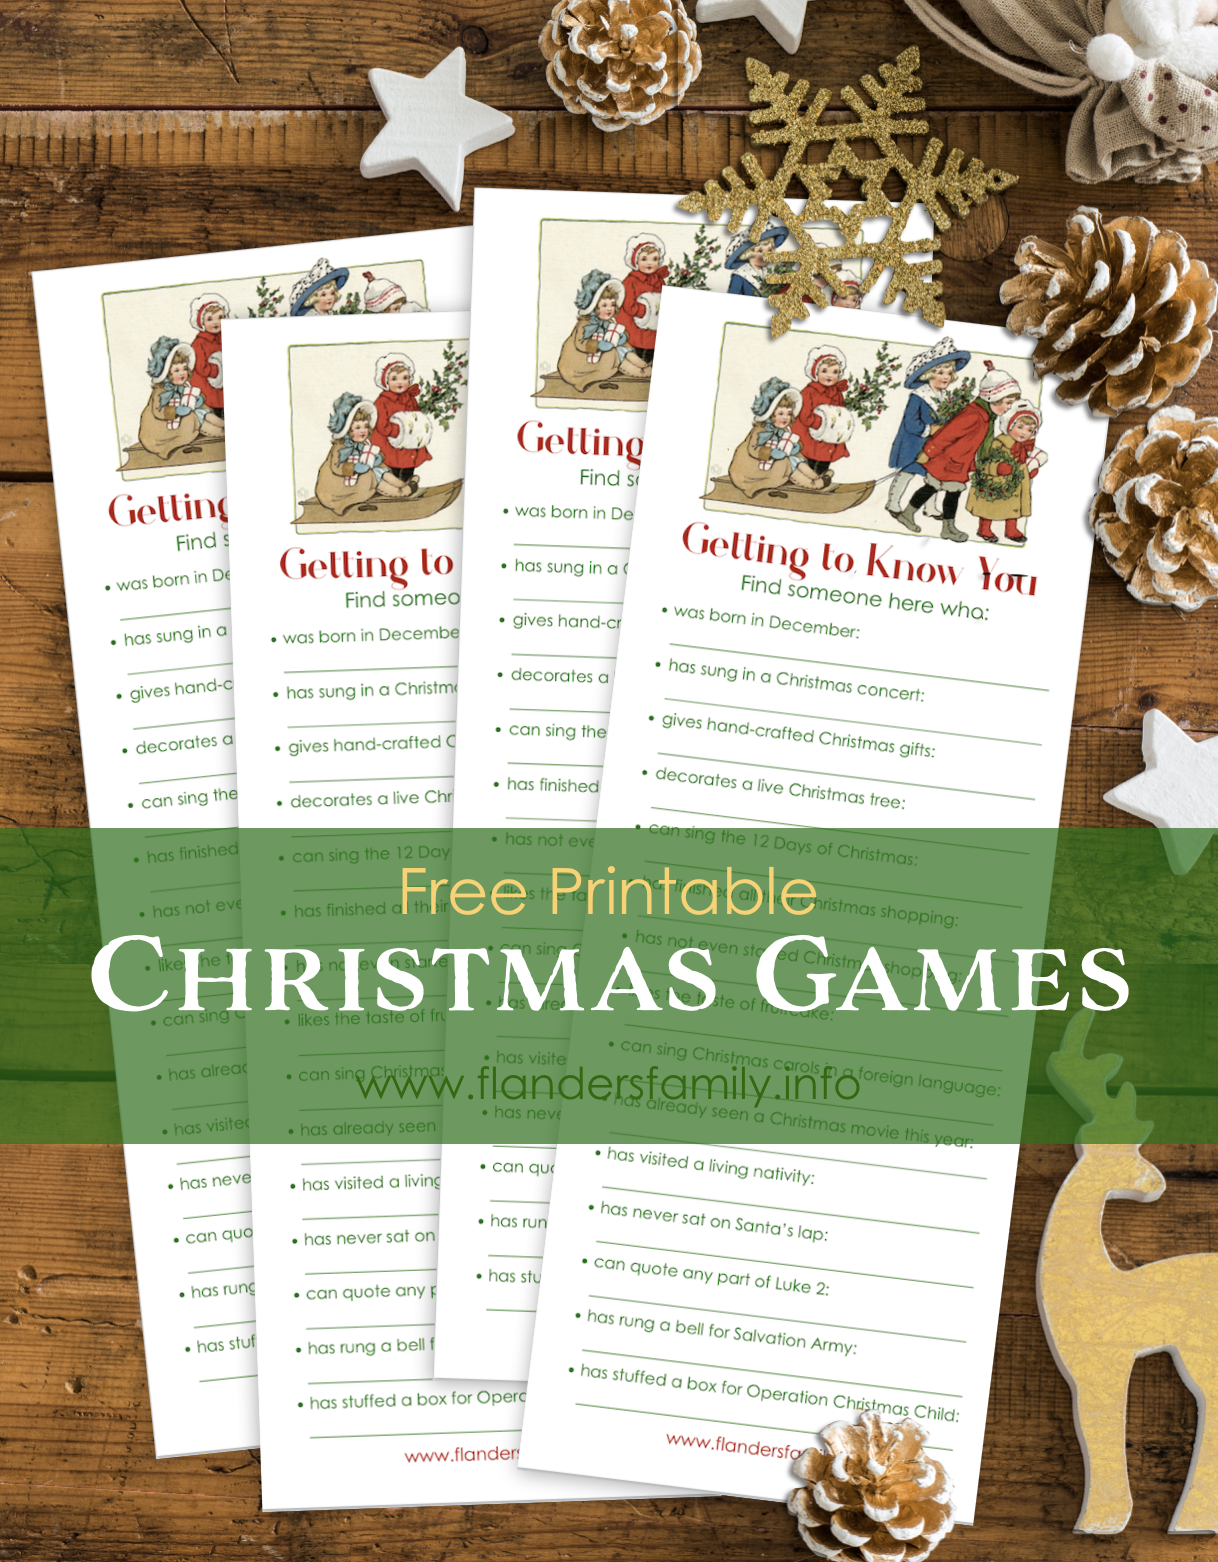 Getting to Know You Christmas Game